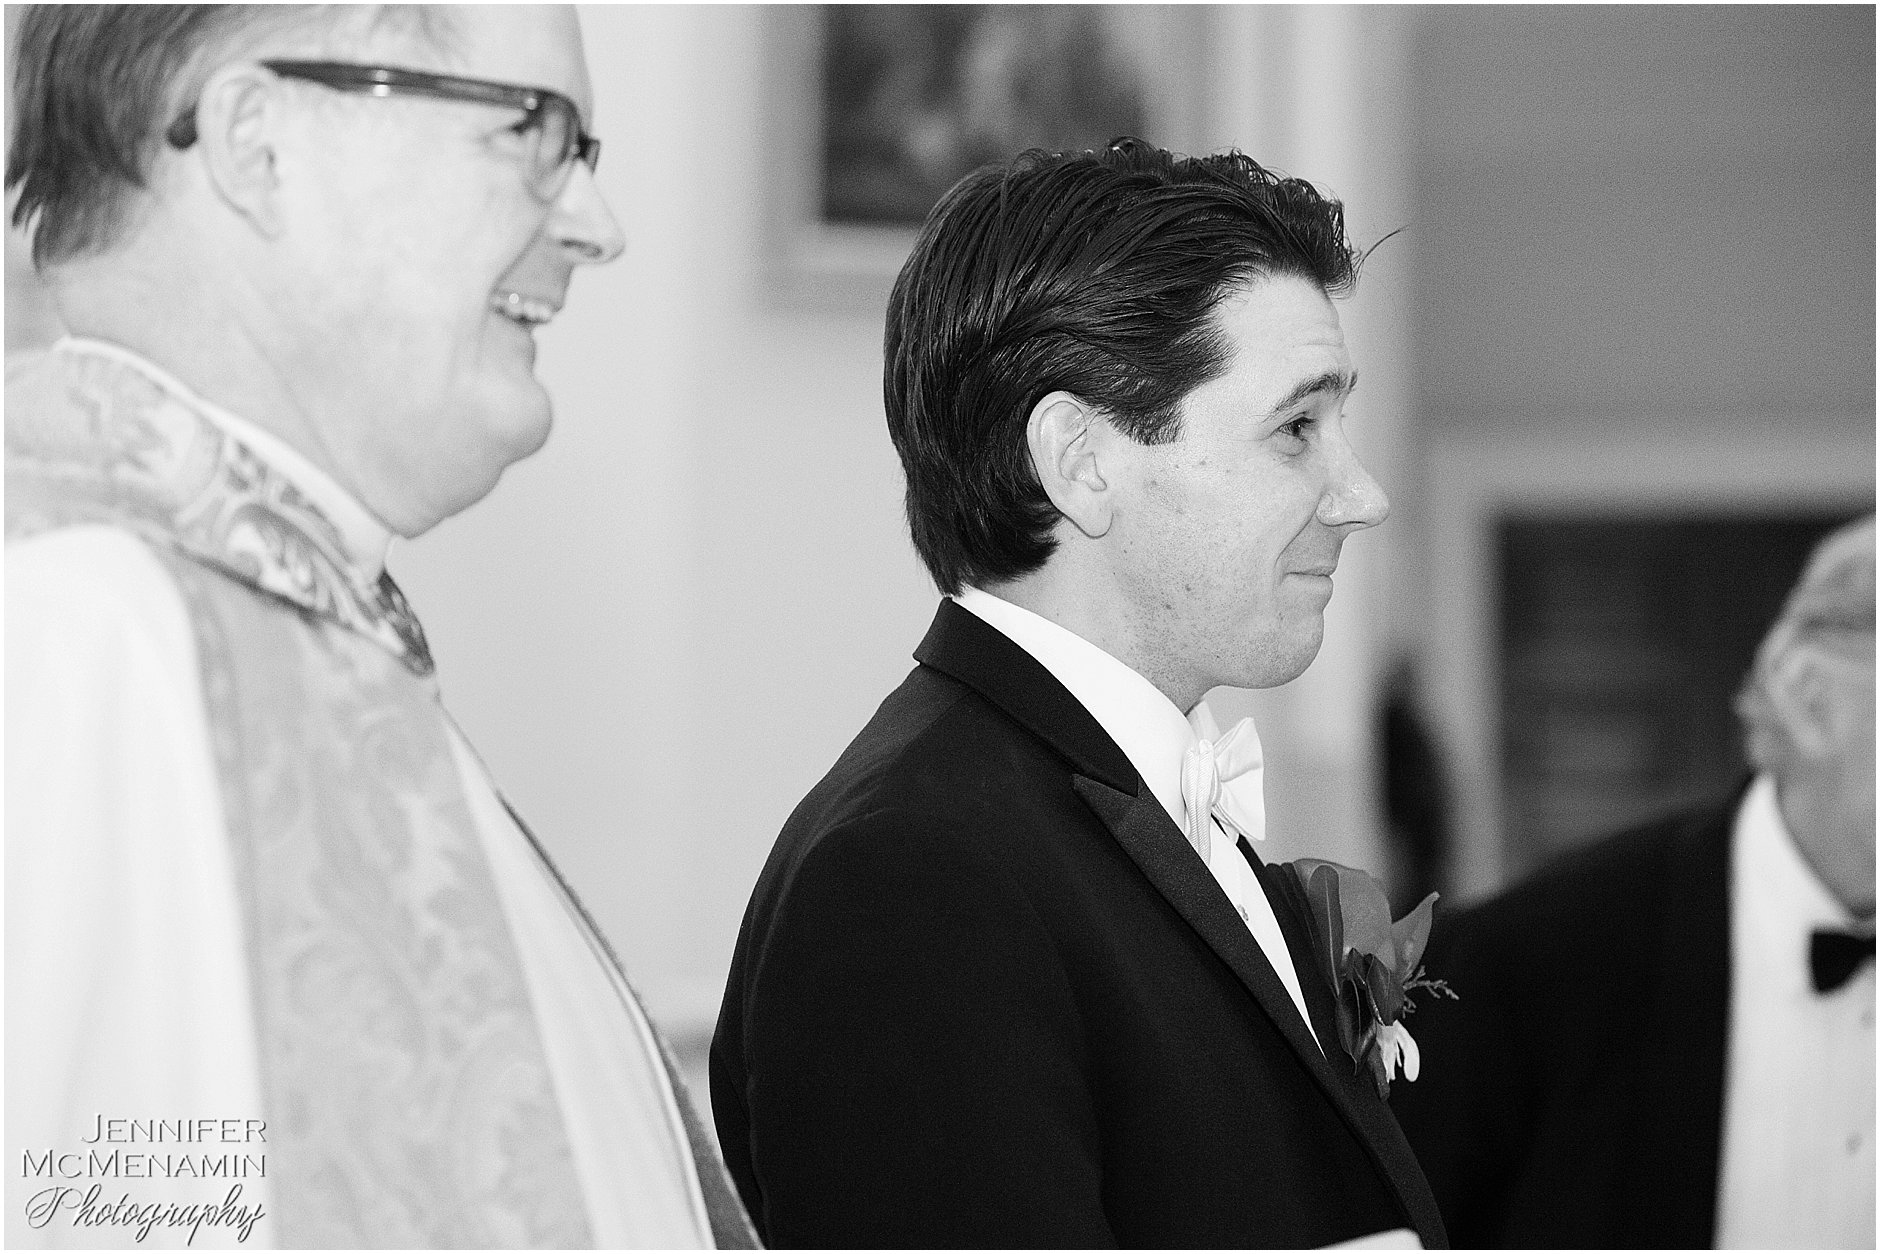 007-JohnsonBollinger_01226bw_Jennifer-McMenamin-Photography-Royal-Sonesta-Harbor-Court-wedding